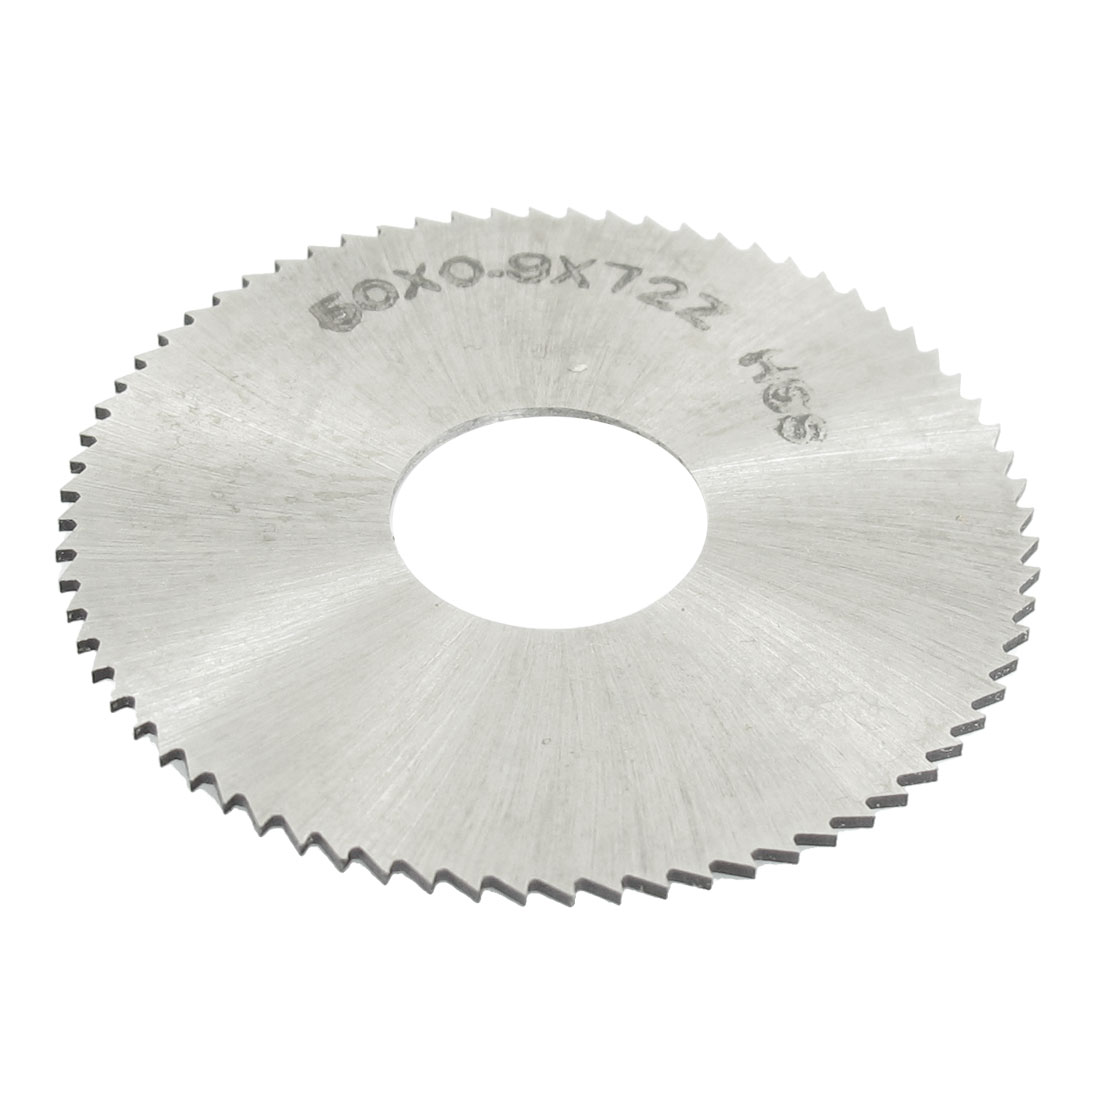 HSS 50mm Dia 0.9mm Thickness 72 Teeth Circular Milling Cutter Saw